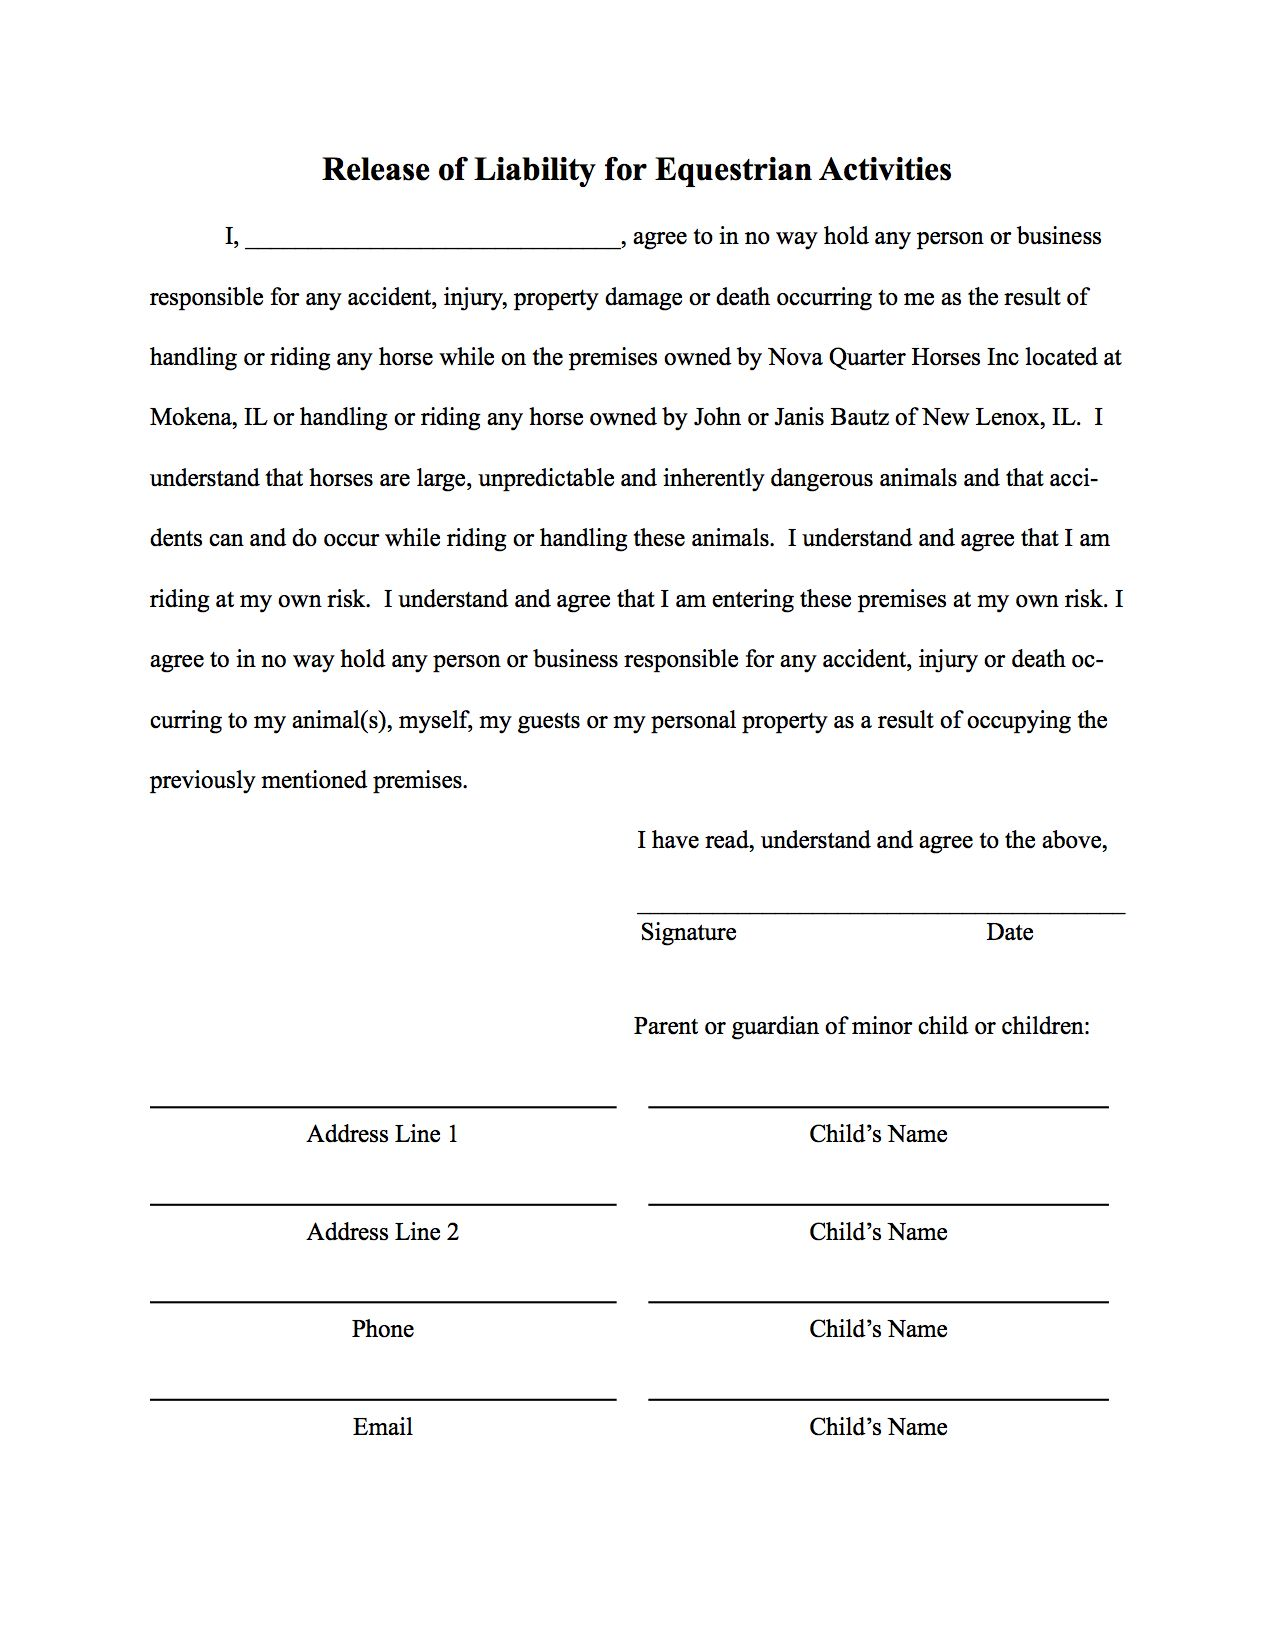 Liability Waiver Form Template Release Of Liability Form Waiver Of Liability  Template With Sample, Liability Waiver Template Free Word Templates  Liability, ...  Free Liability Waiver